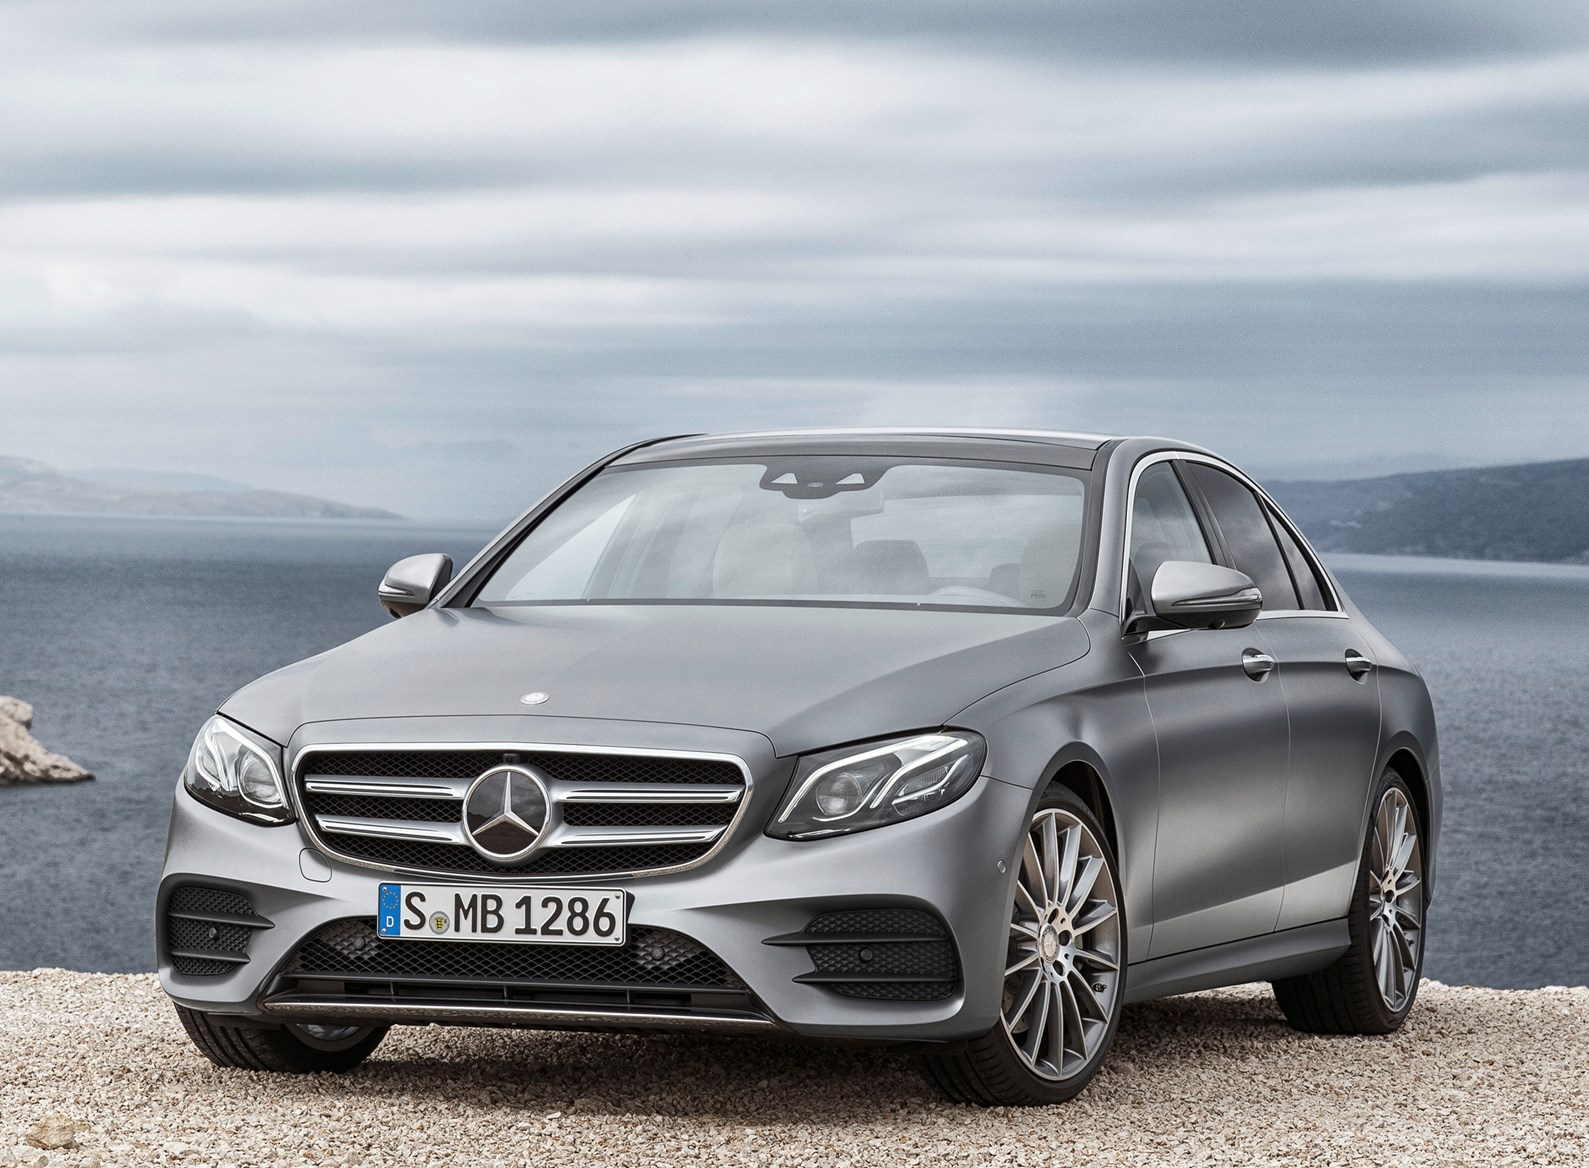 Mercedes benz e class saloon review 2016 parkers for How much is mercedes benz